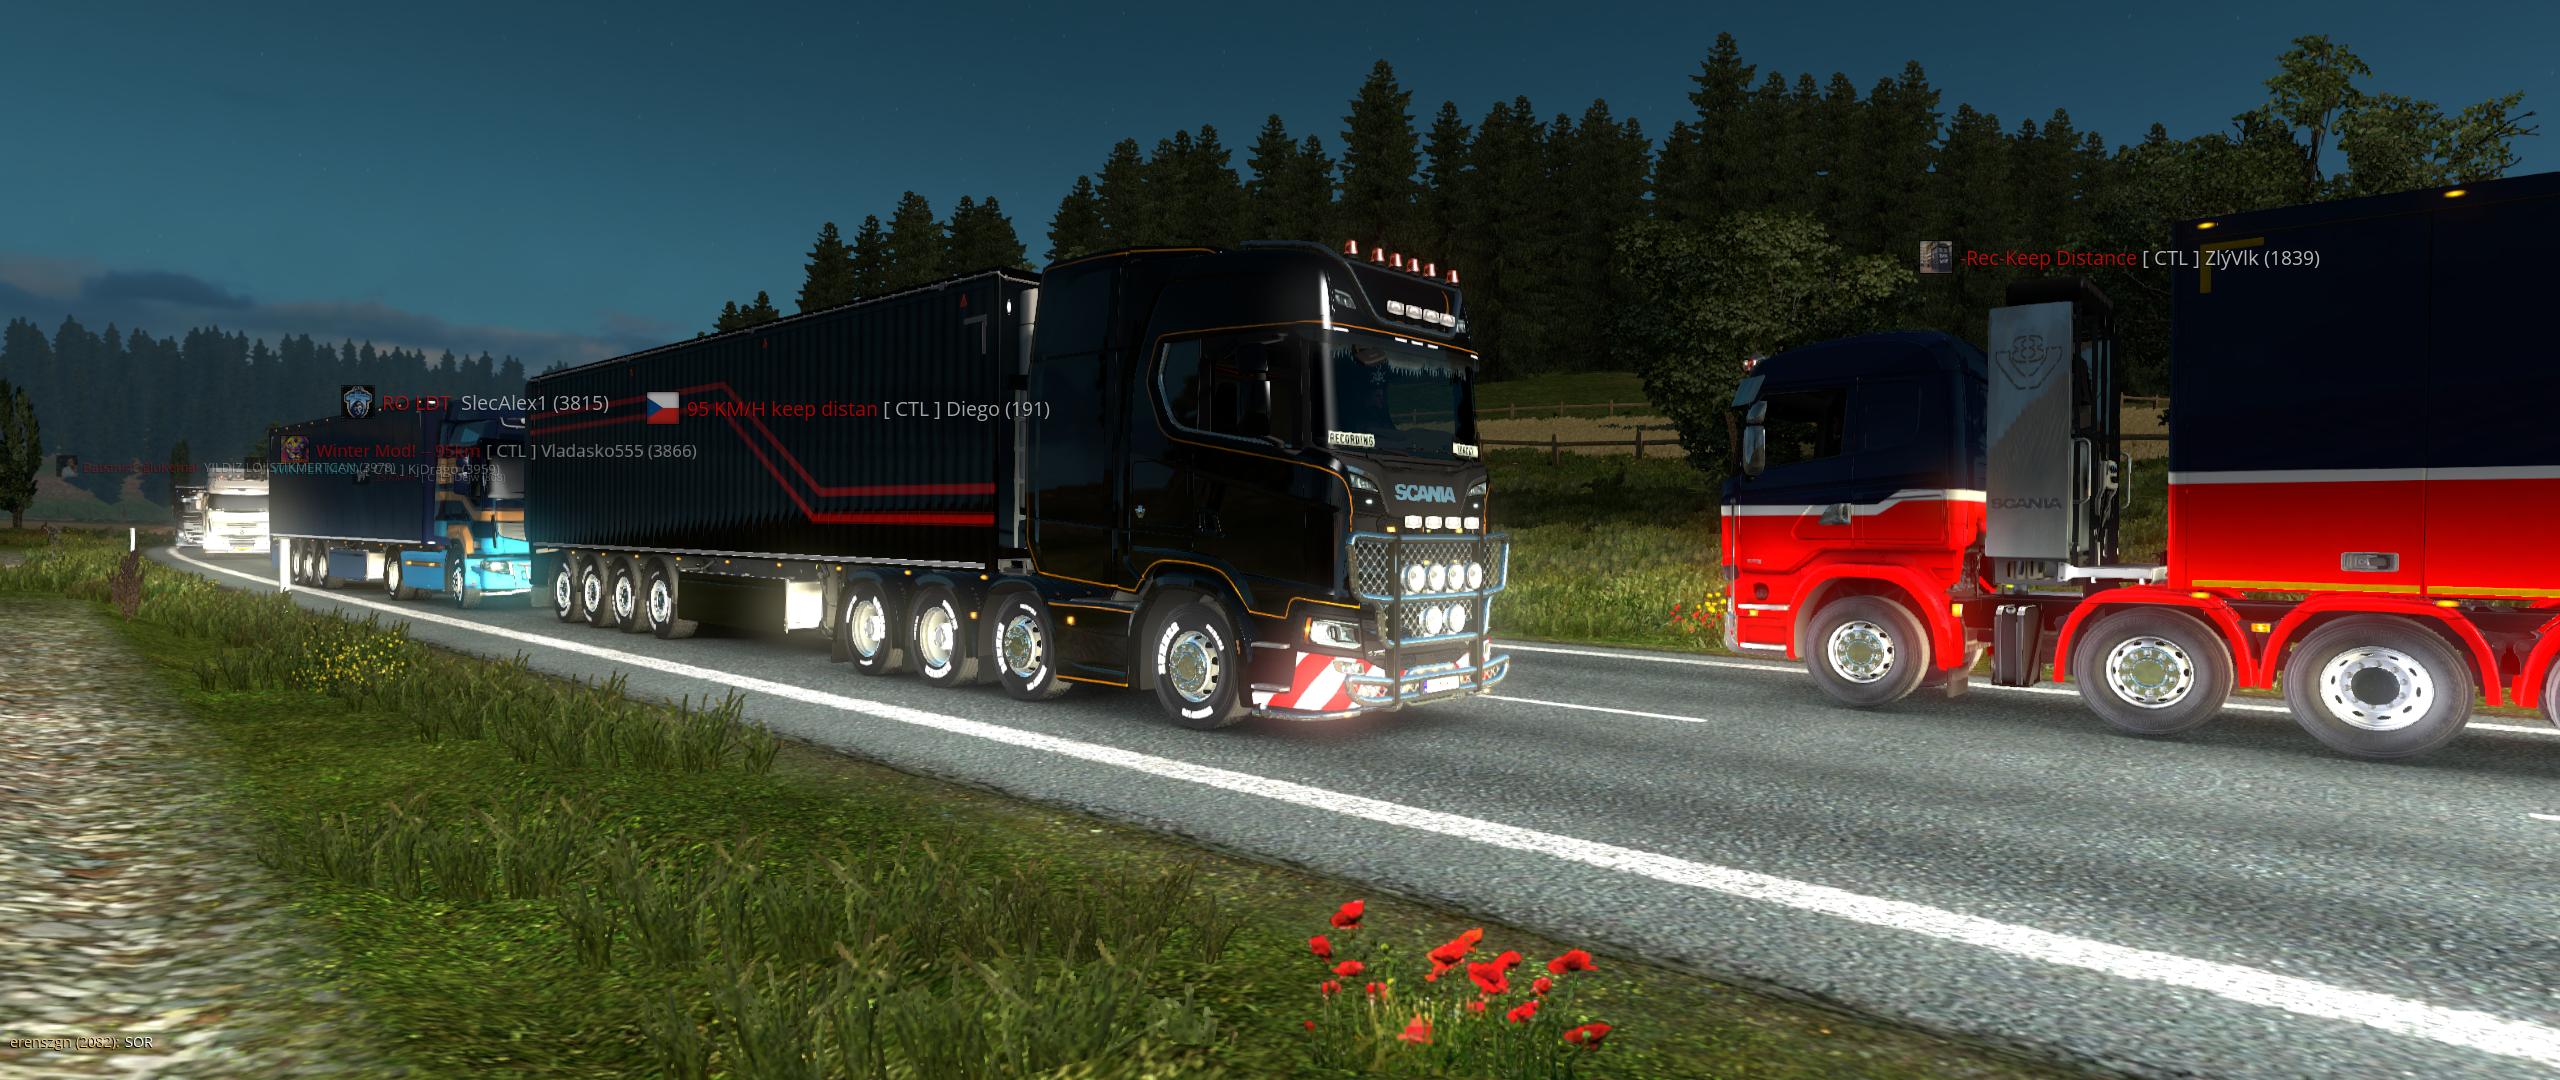 ets2_20190122_210840_00.png